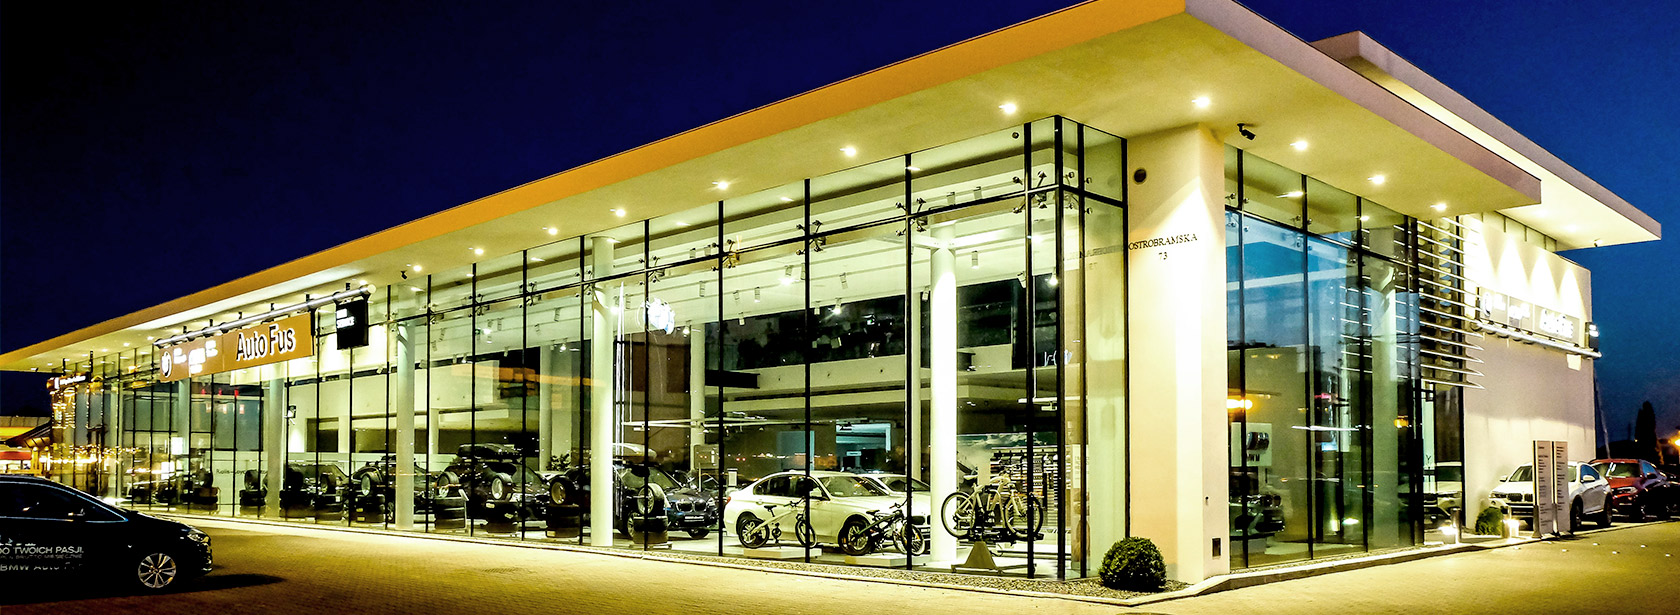 Salon Dealer BMW Auto Fus Group Warszawa